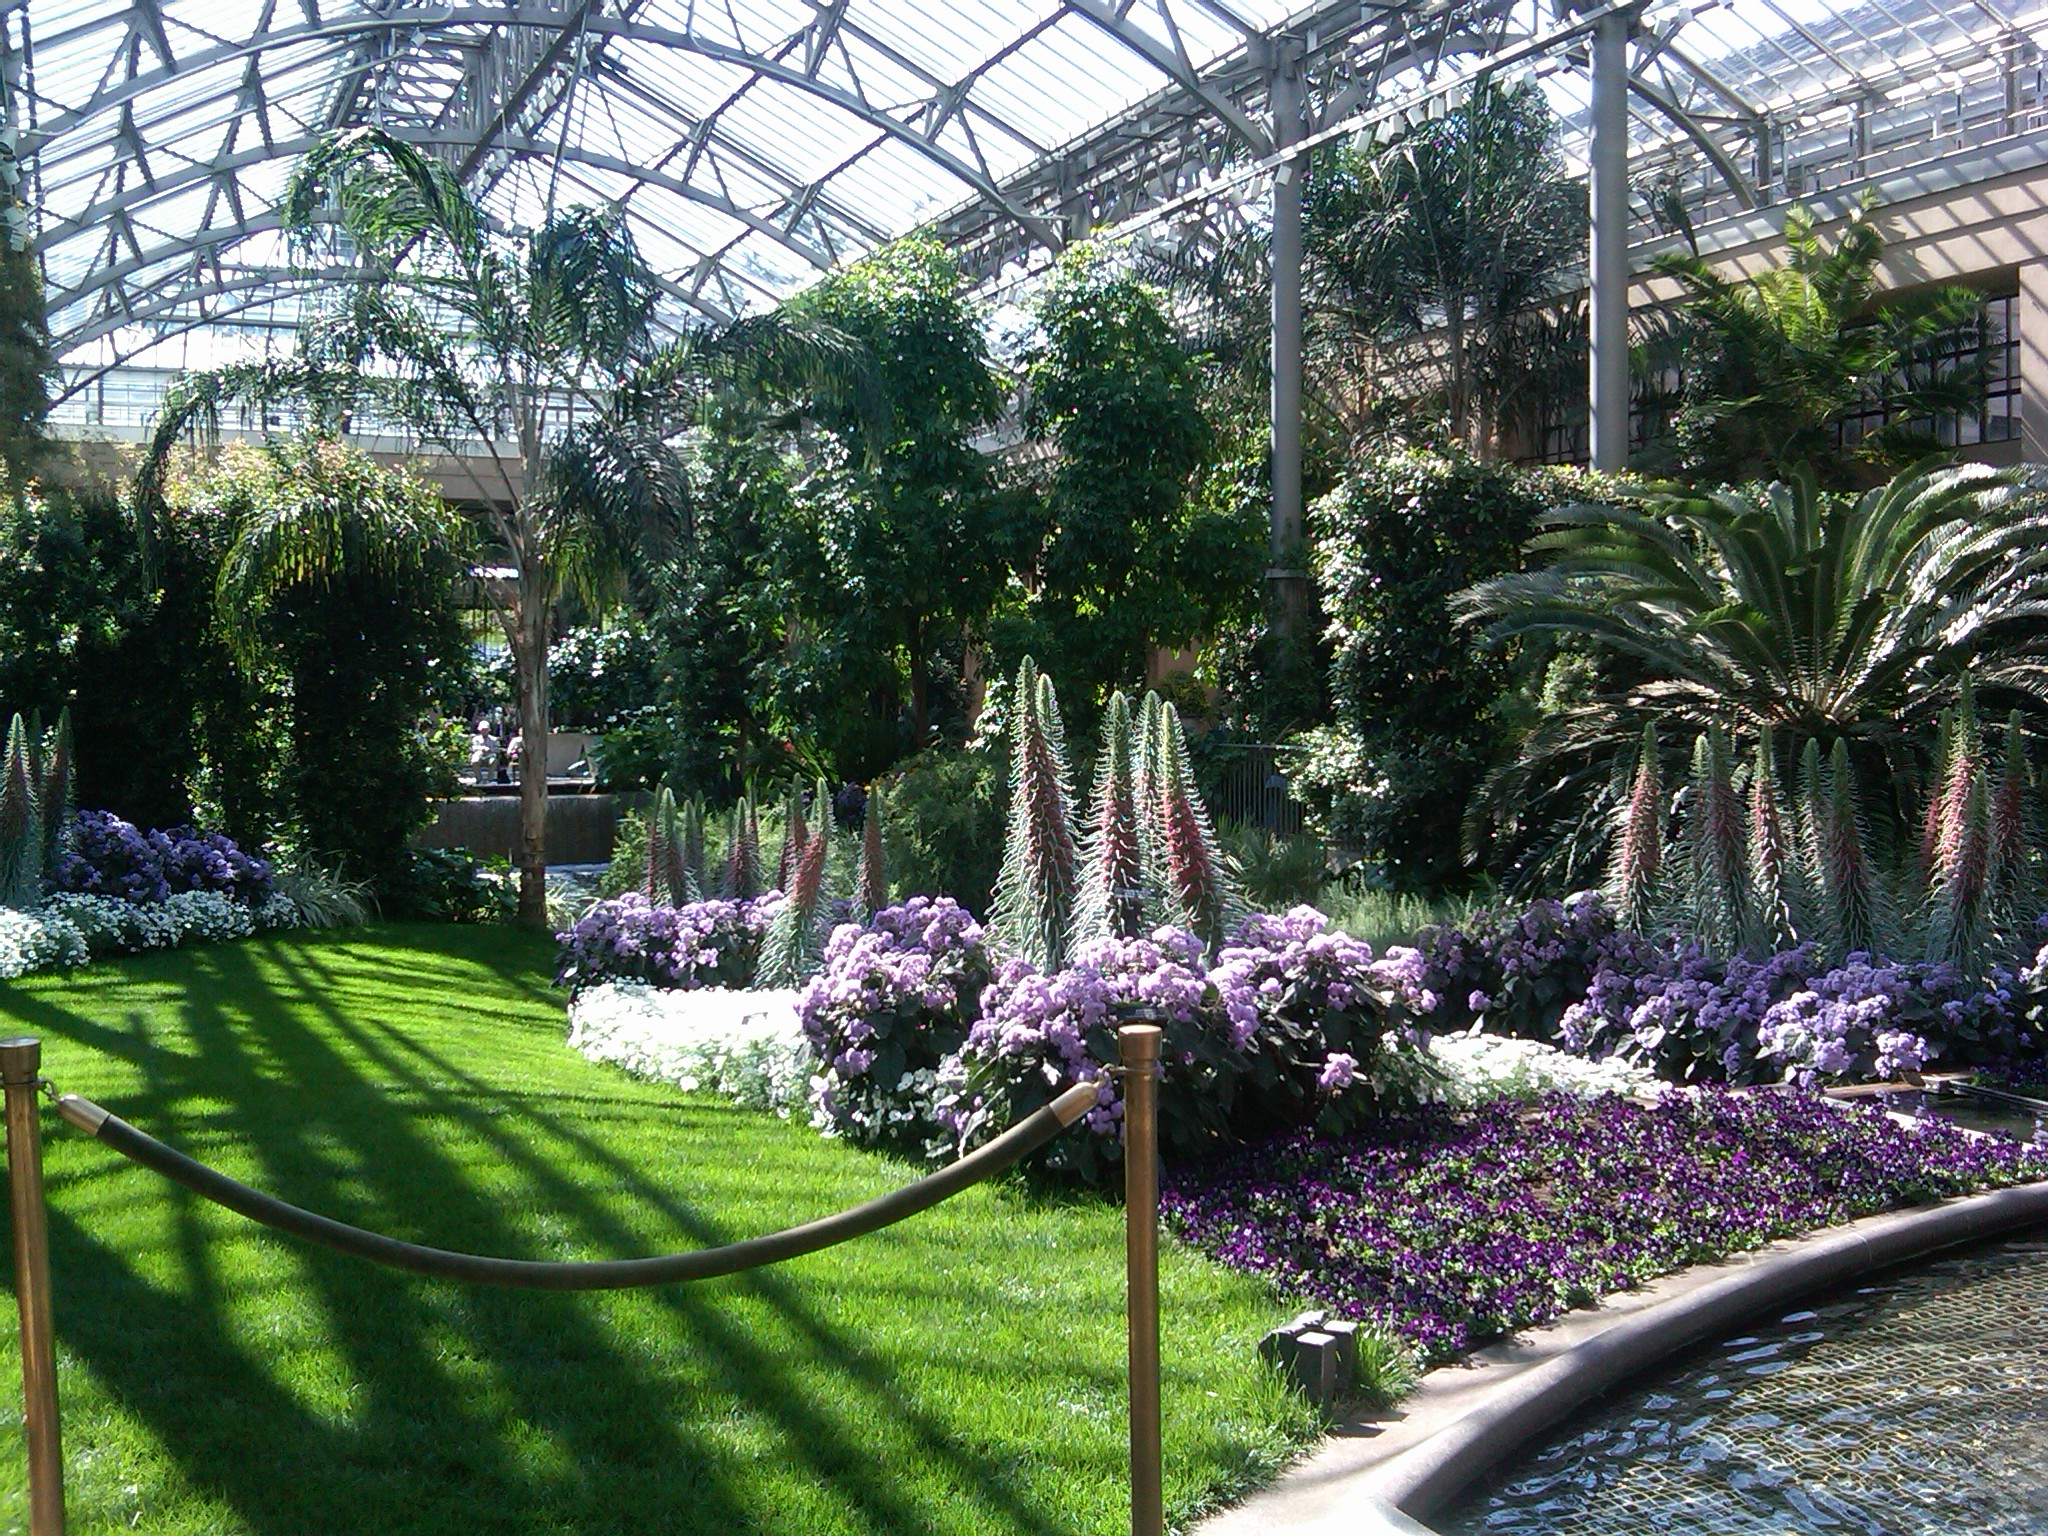 A springtime stroll through longwood gardens erbology for Landscaping longwood